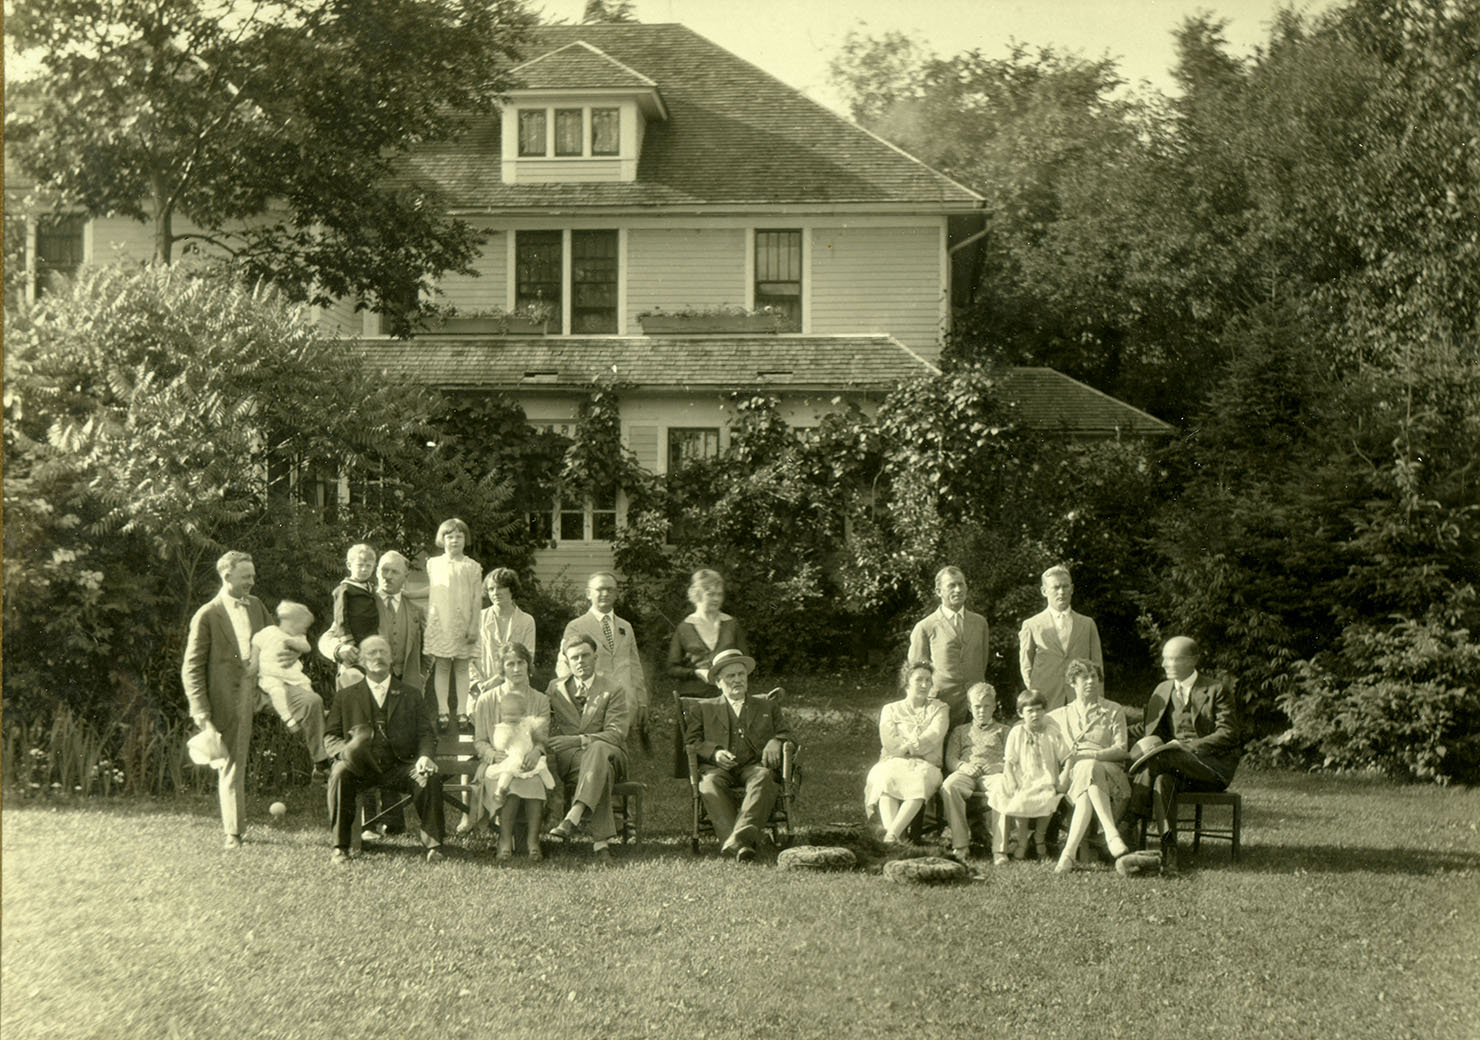 The Fromms posing in front of the family home, late 1930s. Photograph courtesy of the Marathon County Historical Society.